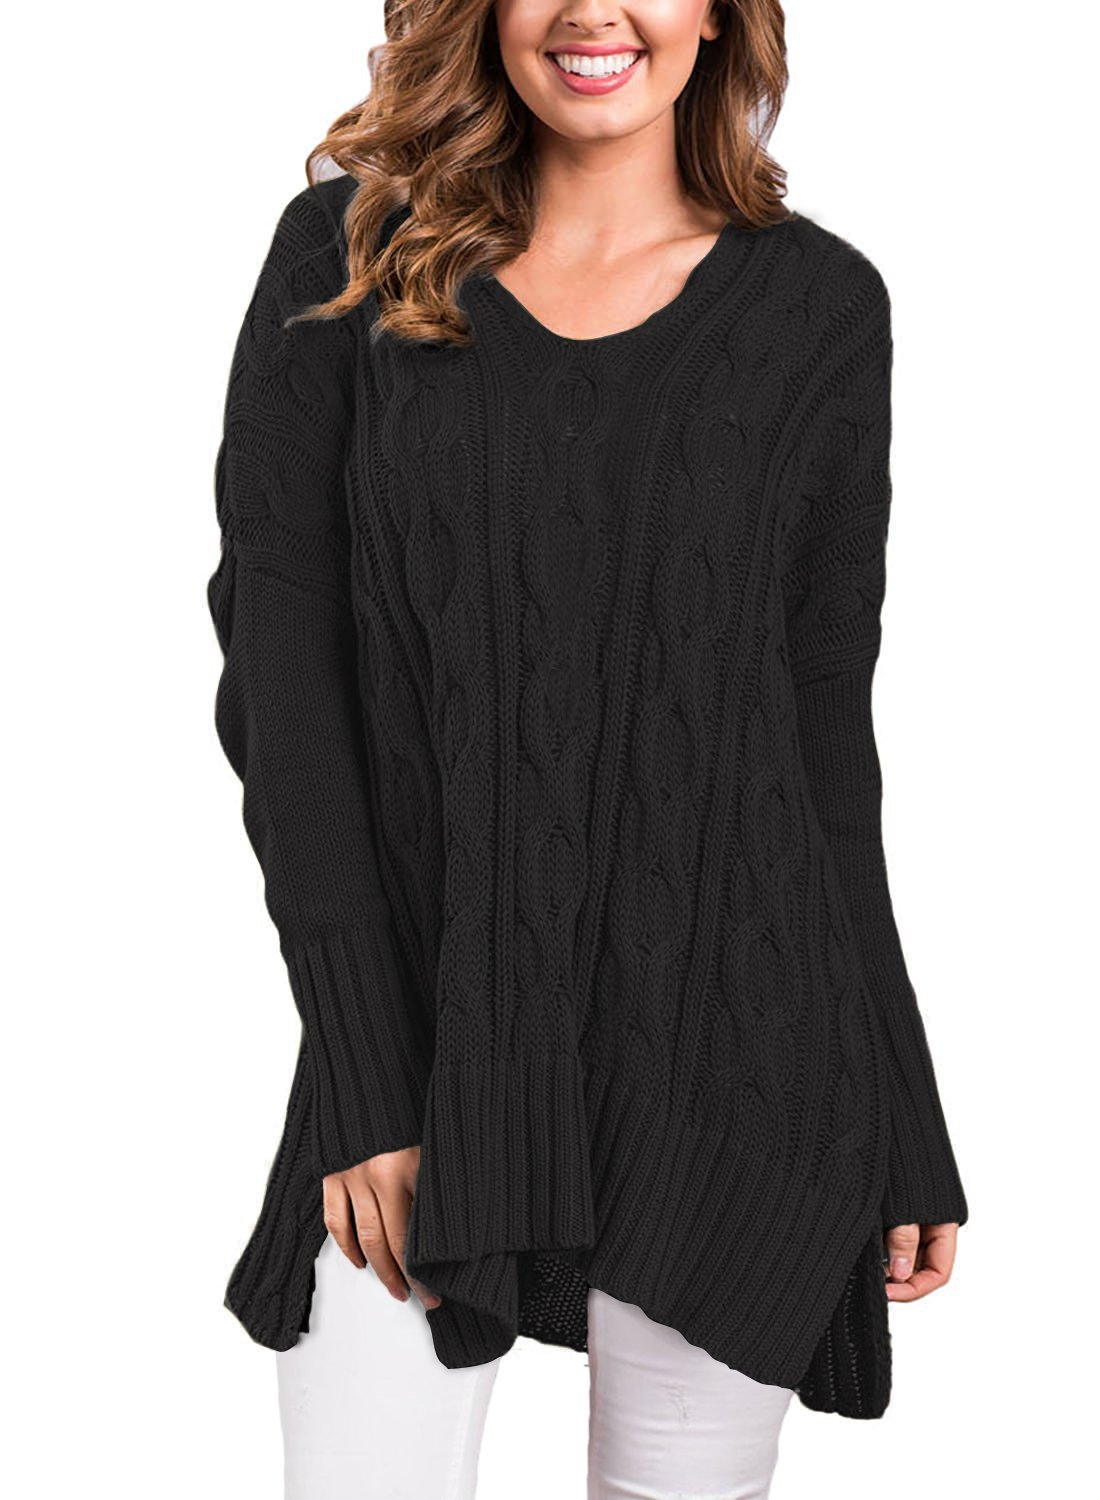 VERABENDI Women Casual V Neck Loose Fit Knit Sweater Pullover Top Black XL